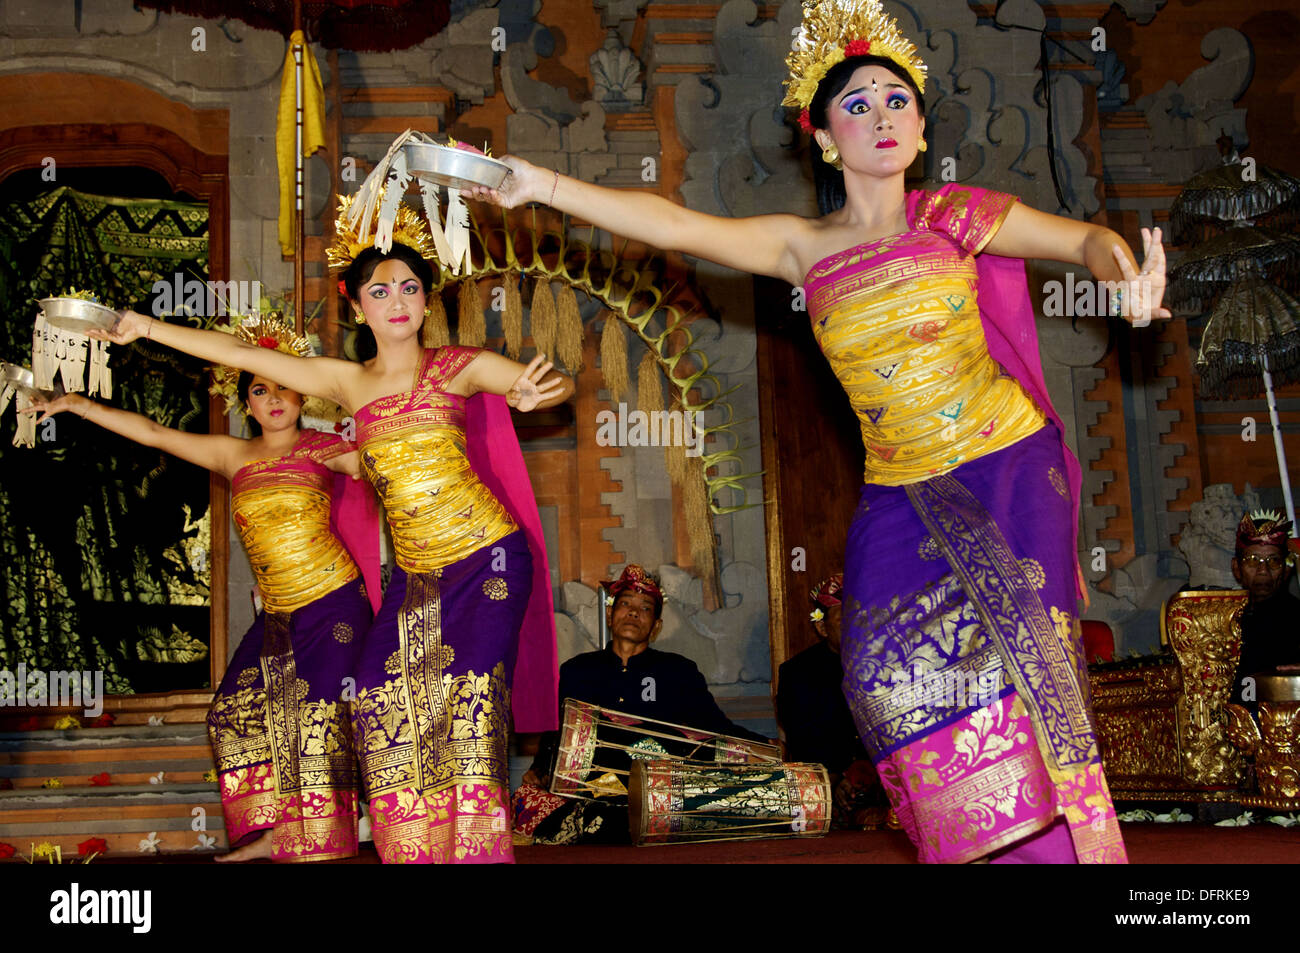 Women In A Traditional Costumes Dancing A Balinese Dance In